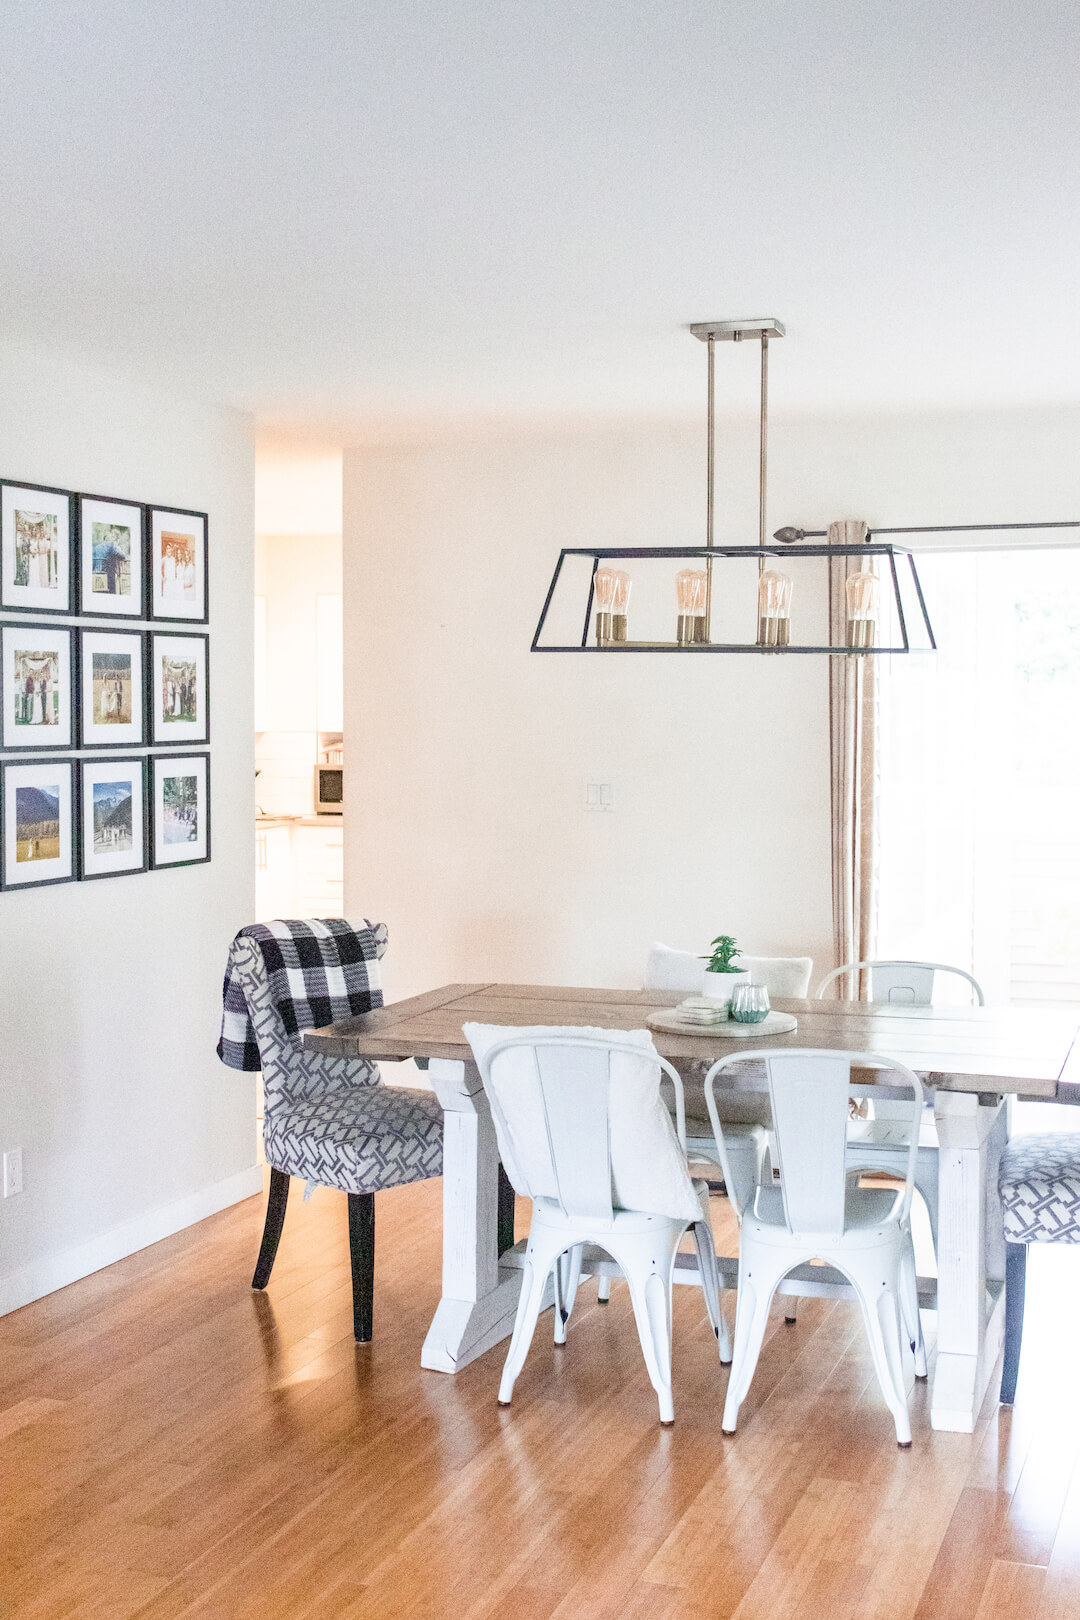 Home Tour Series: Our Morern Farmhouse Dining Room width=